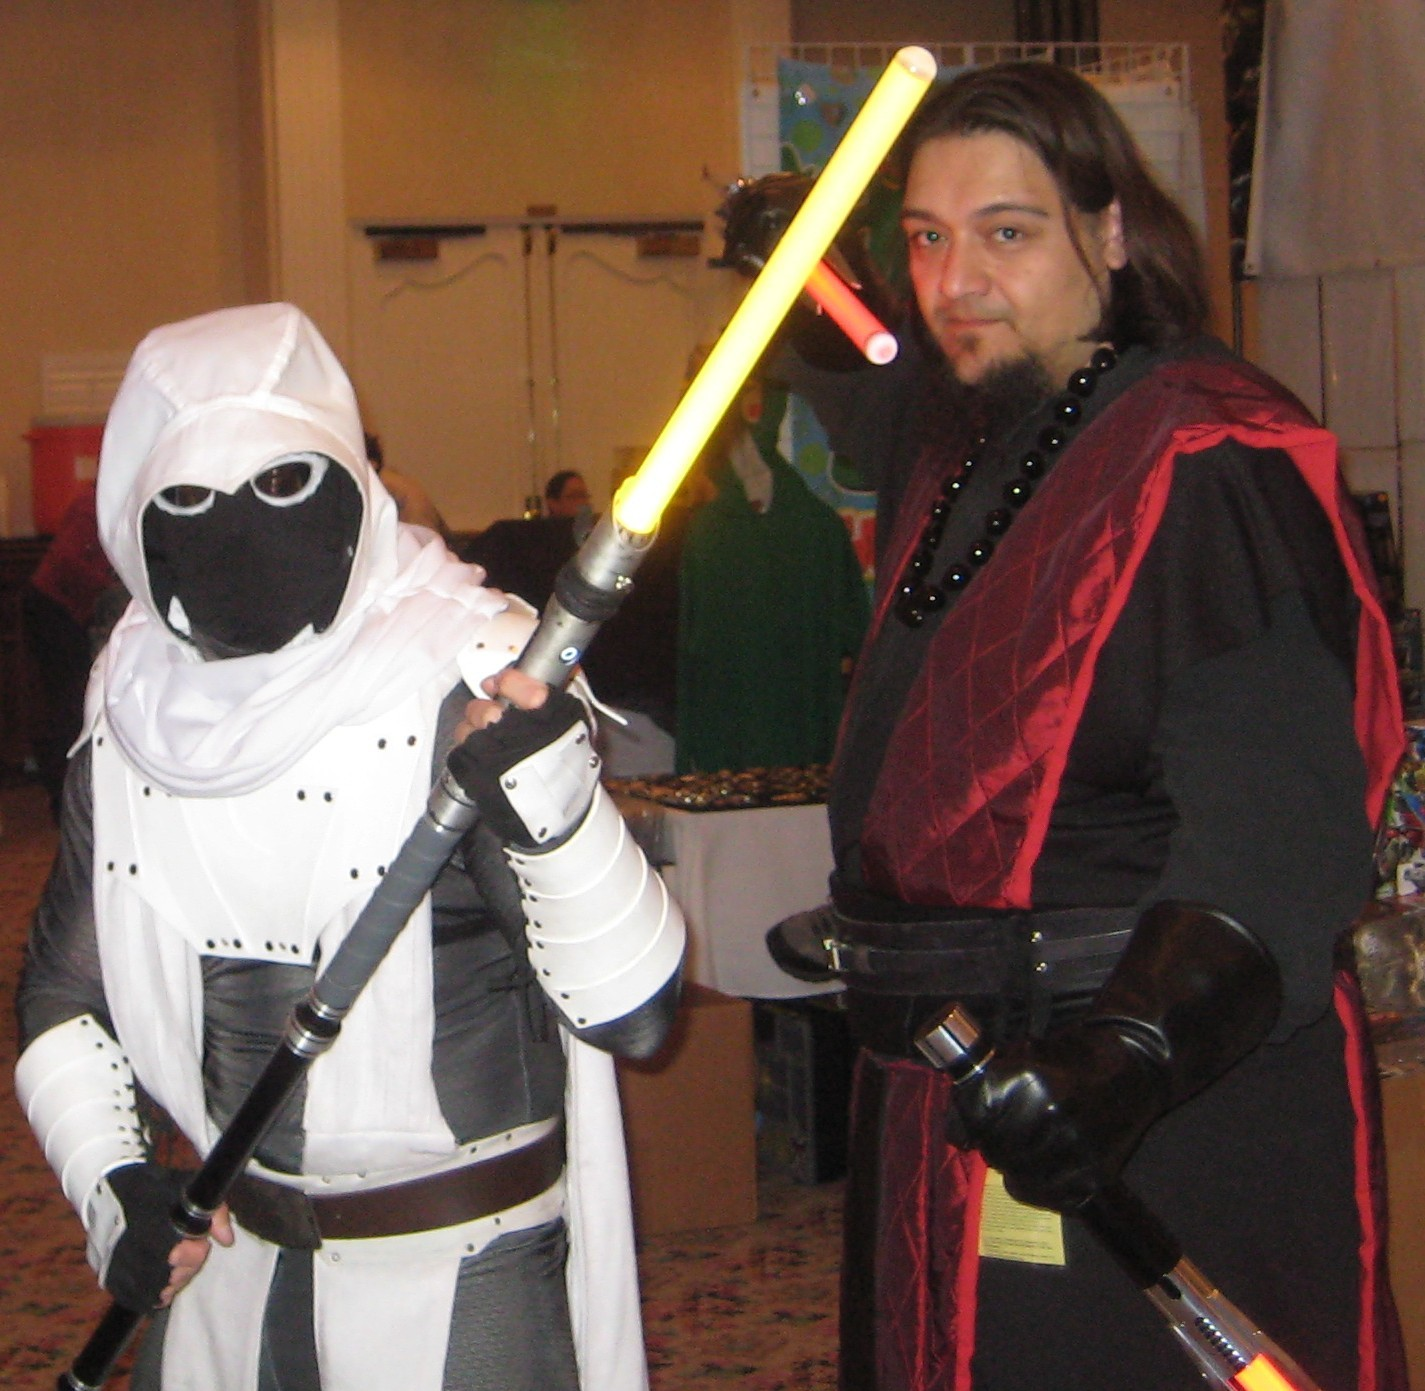 MoonKnight from Marvel Comics becomes a Jedi and a StarWars cosplayer